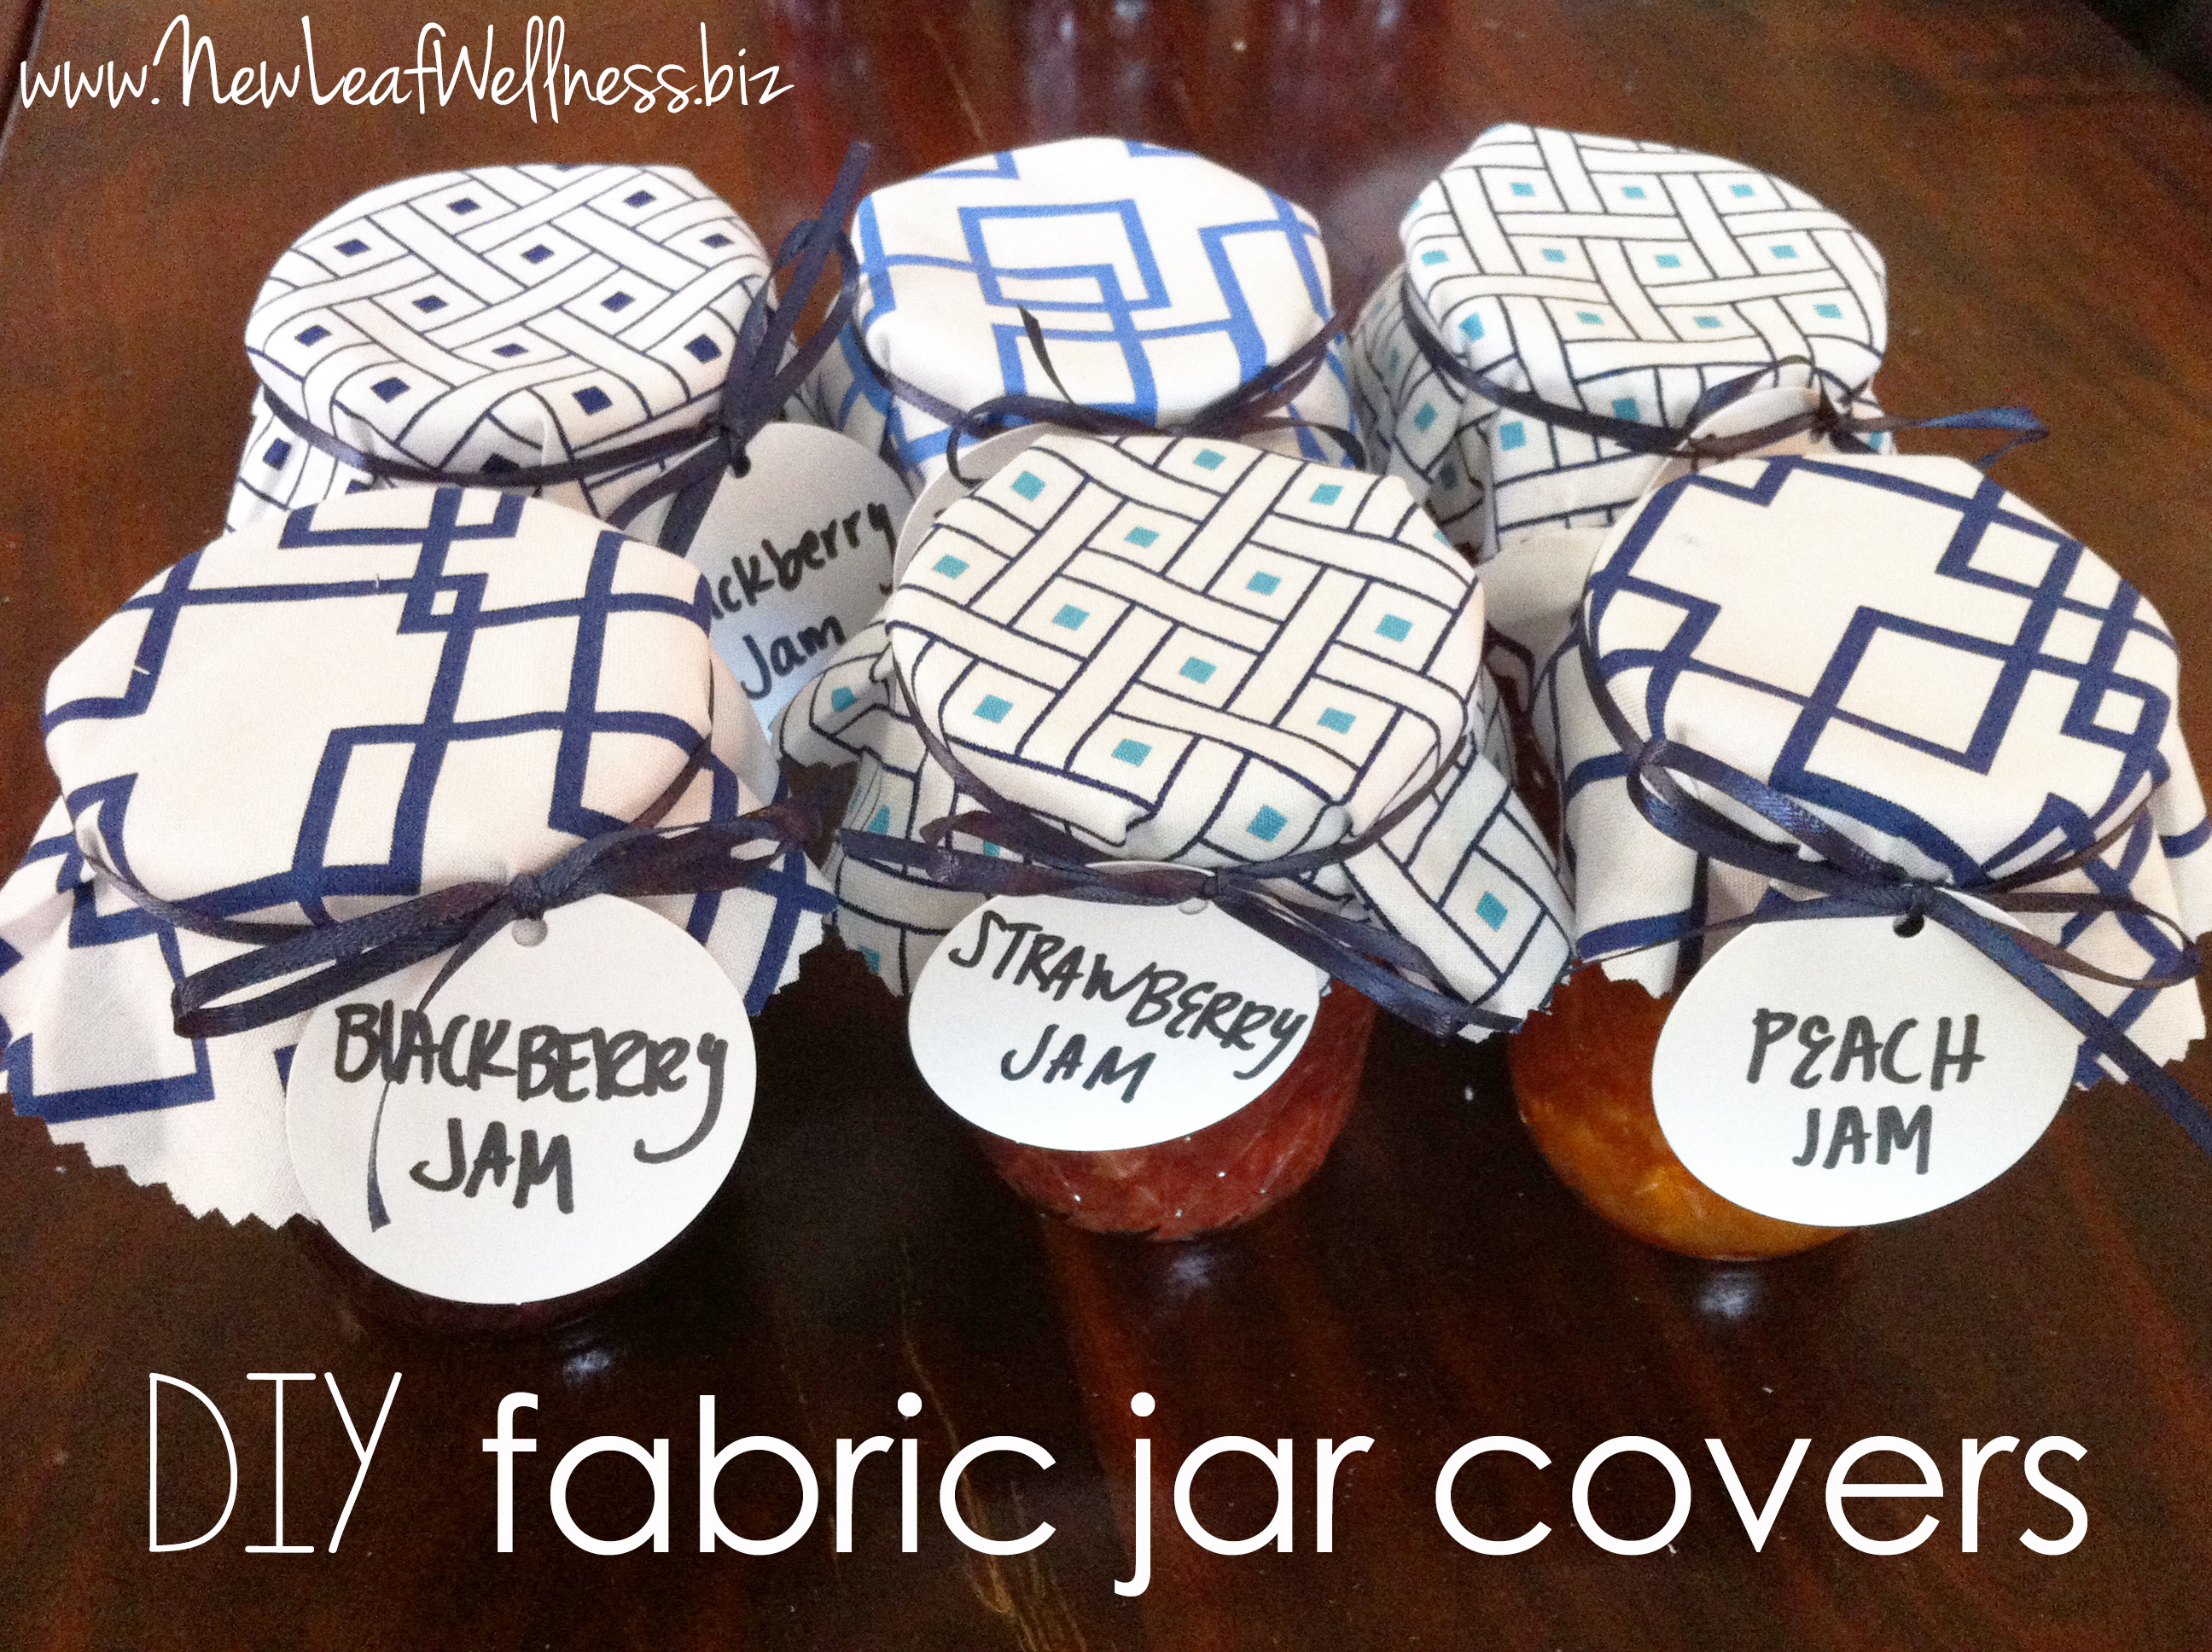 Fabric Jar Covers Diy New Leaf Wellness